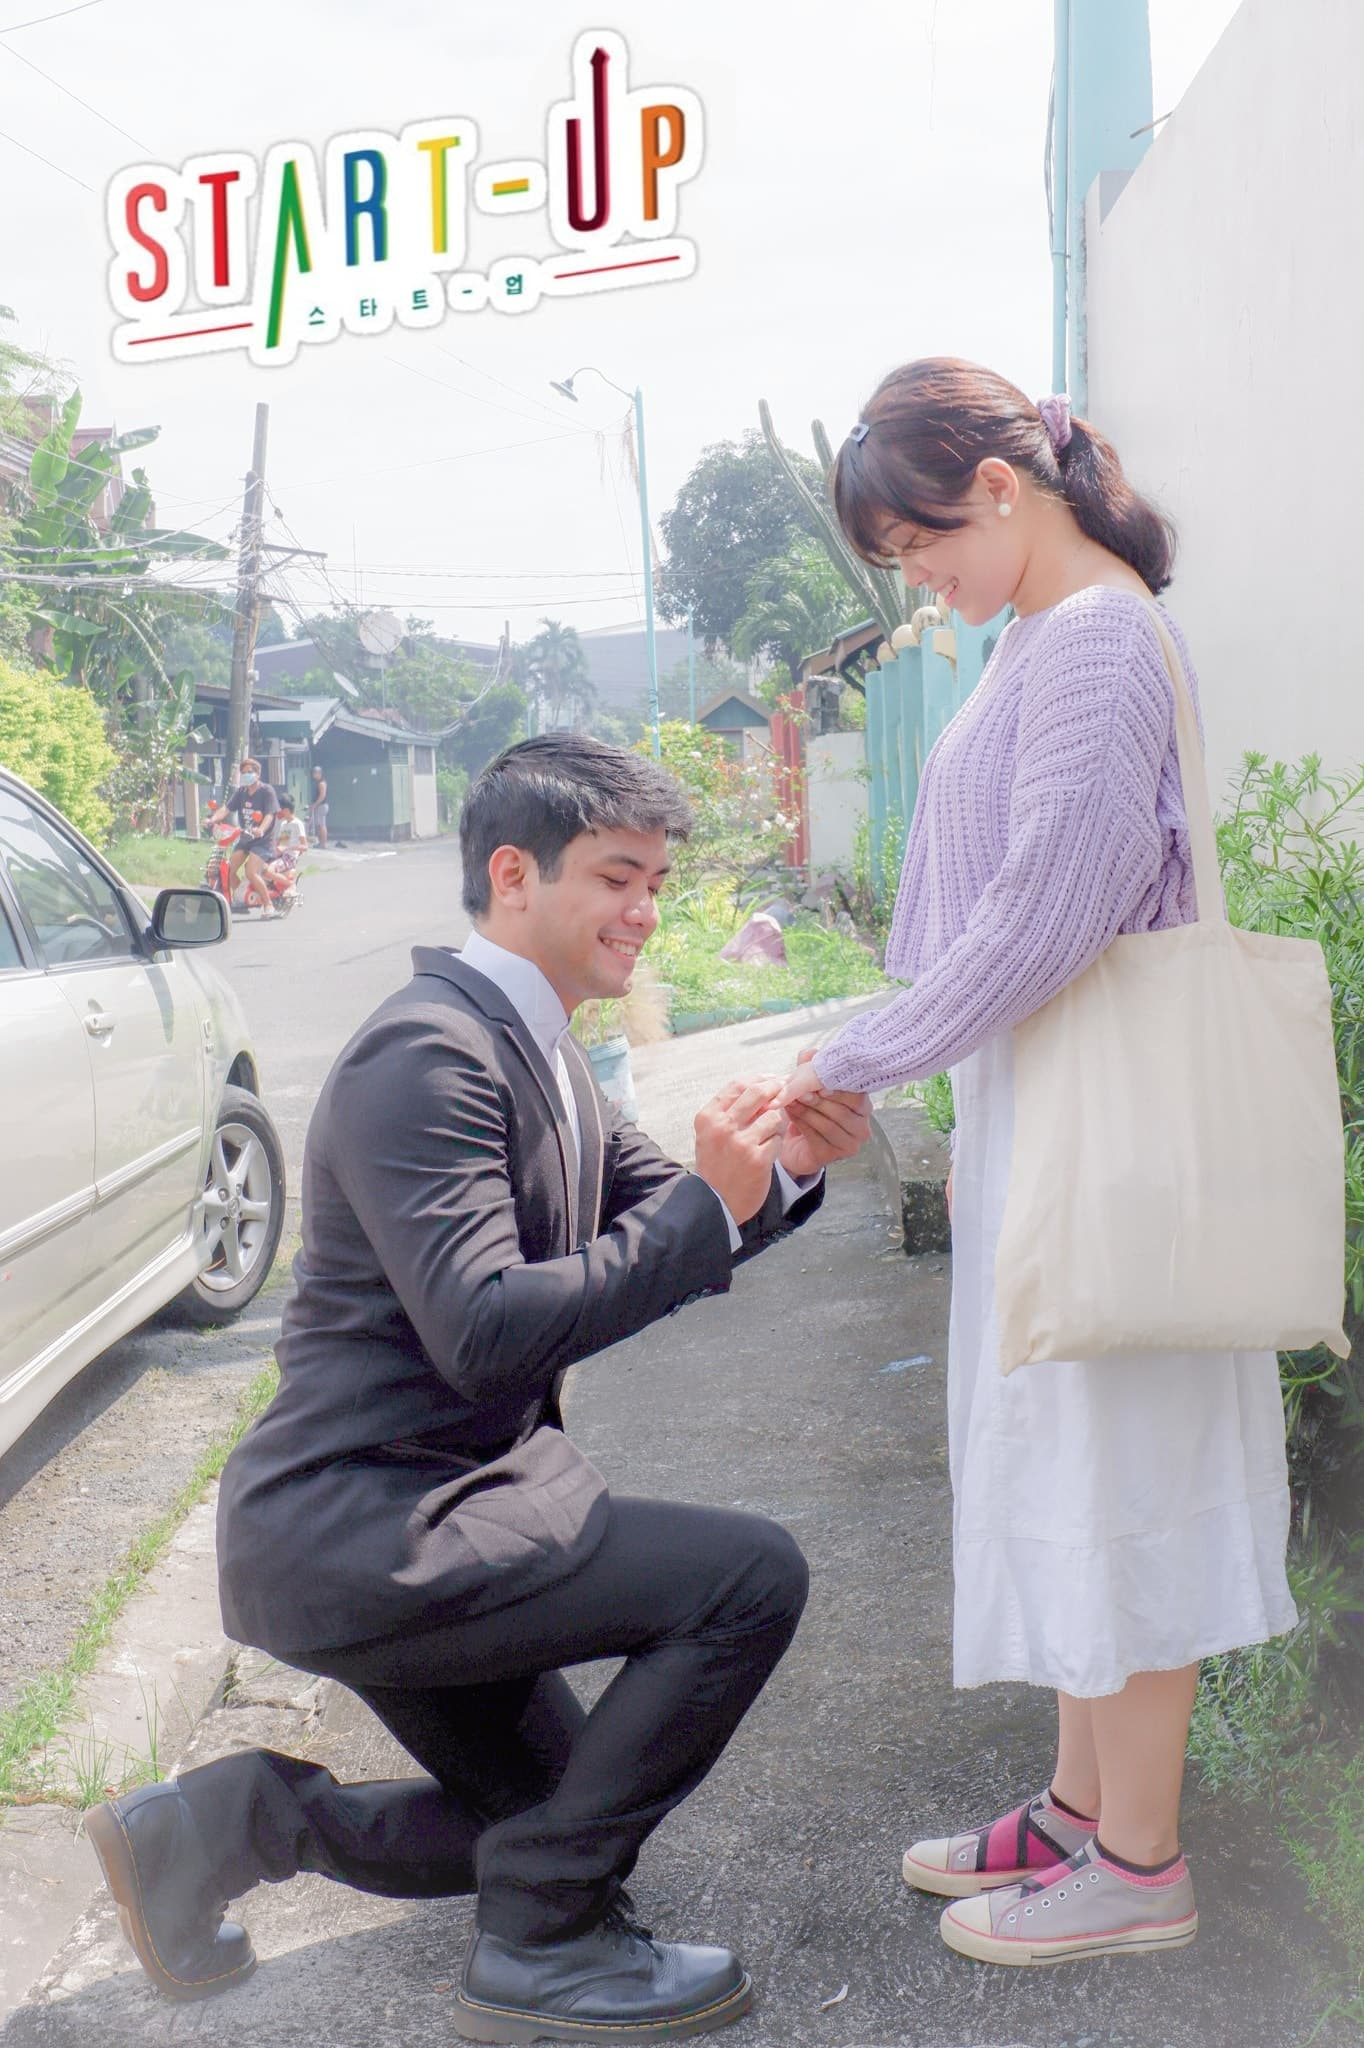 Pinoy couple's Start-Up-inspired prenup shoot